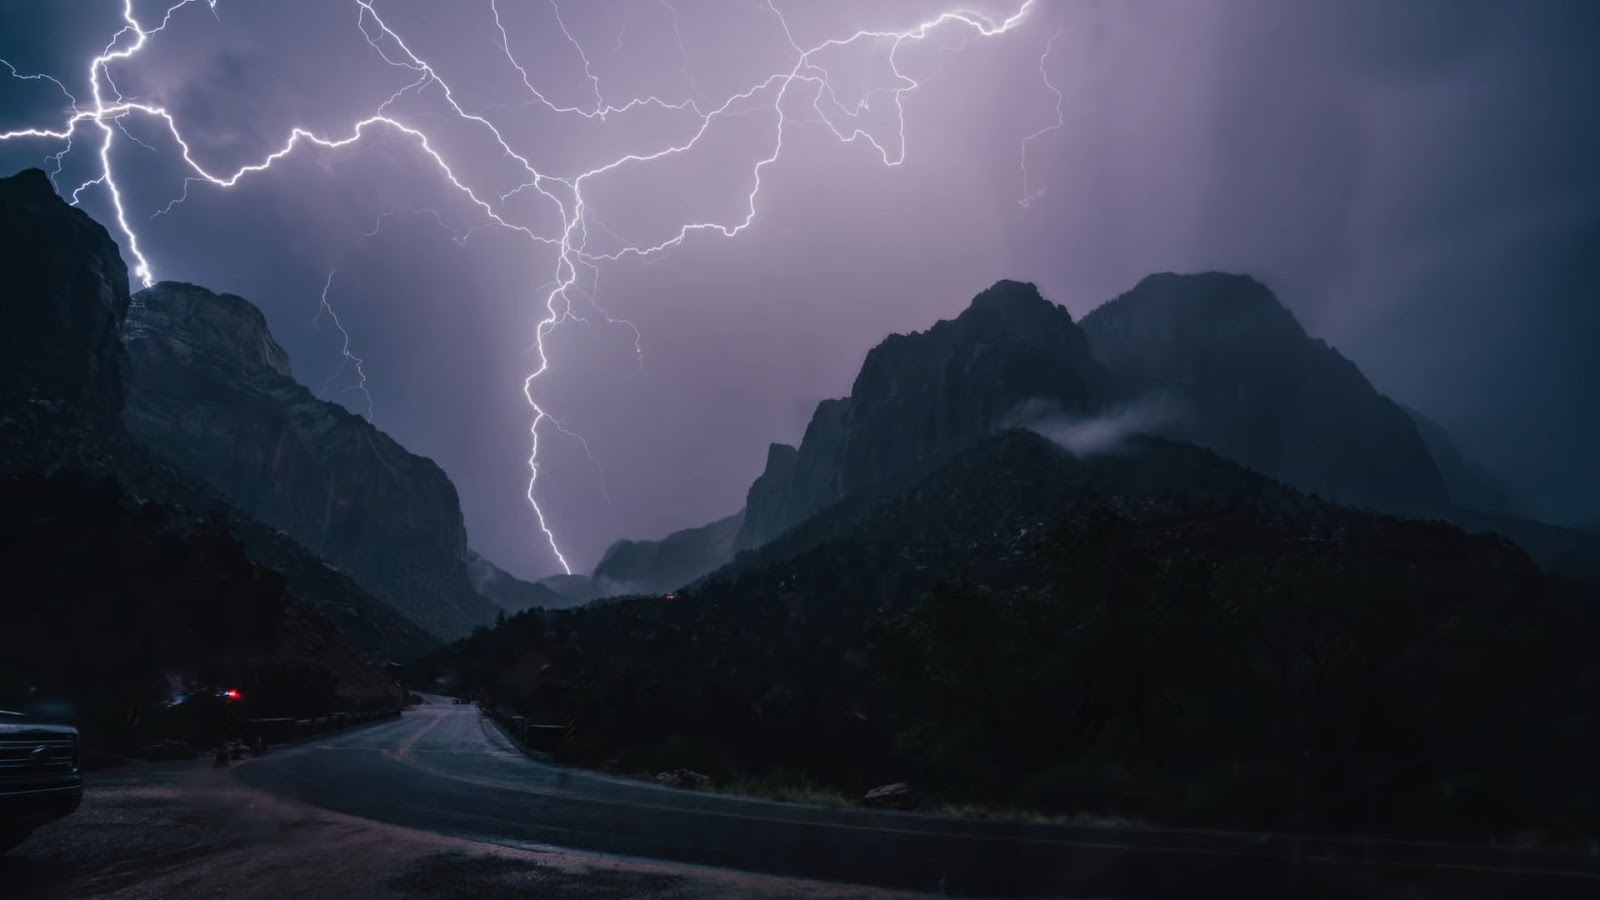 TAKE STRIKING LIGHTNING Photos Now! - 5 Secrets to take photos of the lightning